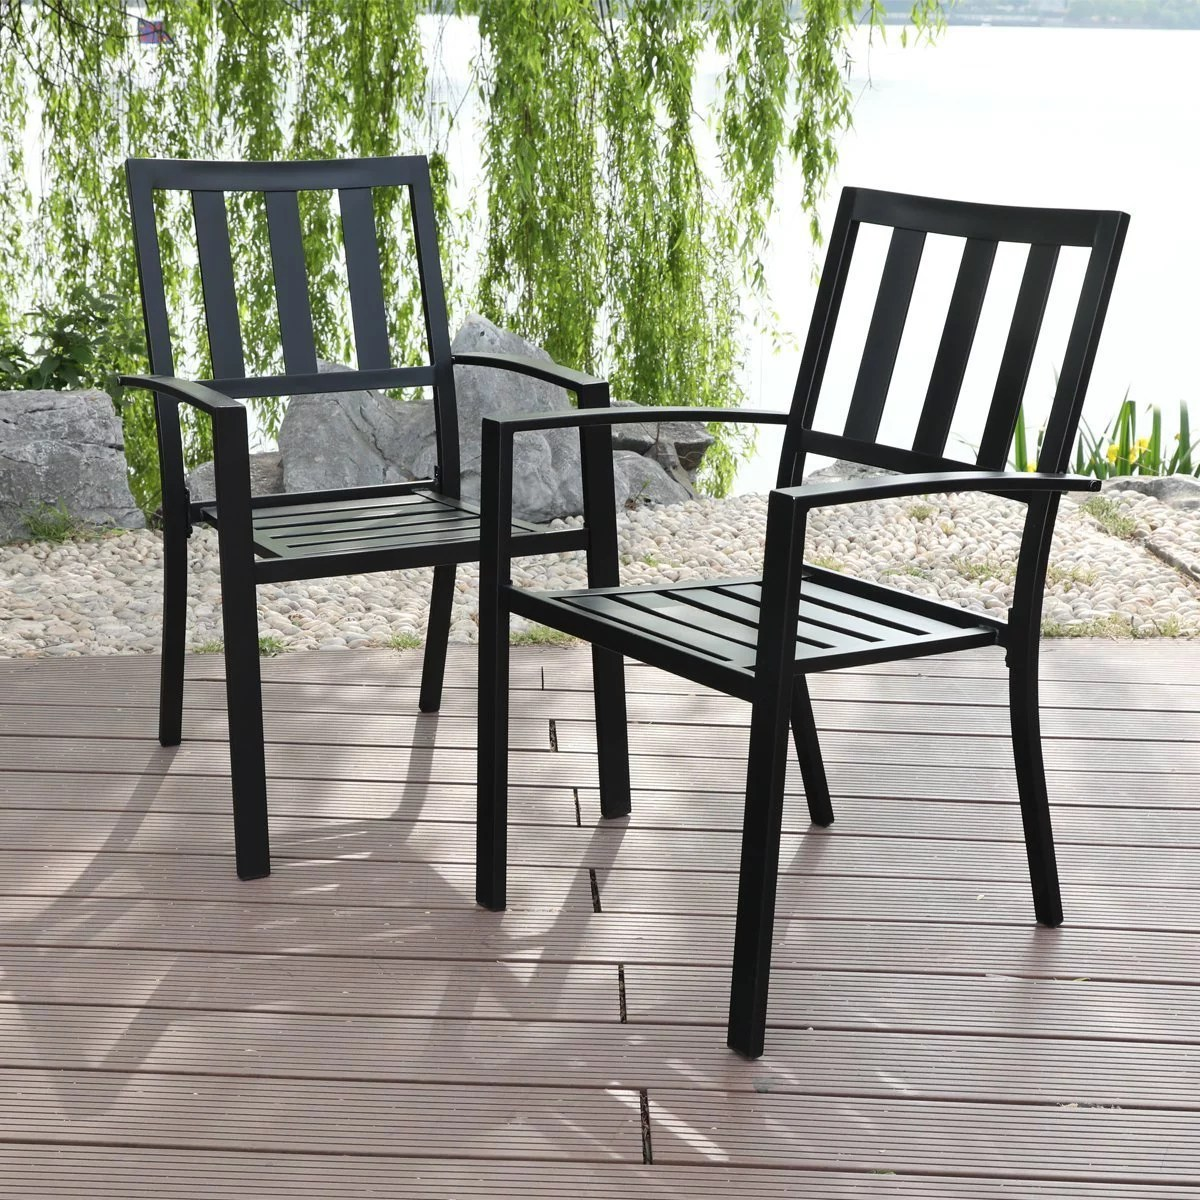 mf studio metal patio outdoor dining chairs set of 2 stackable bistro deck chairs for garden backyard lawn support 300lb black